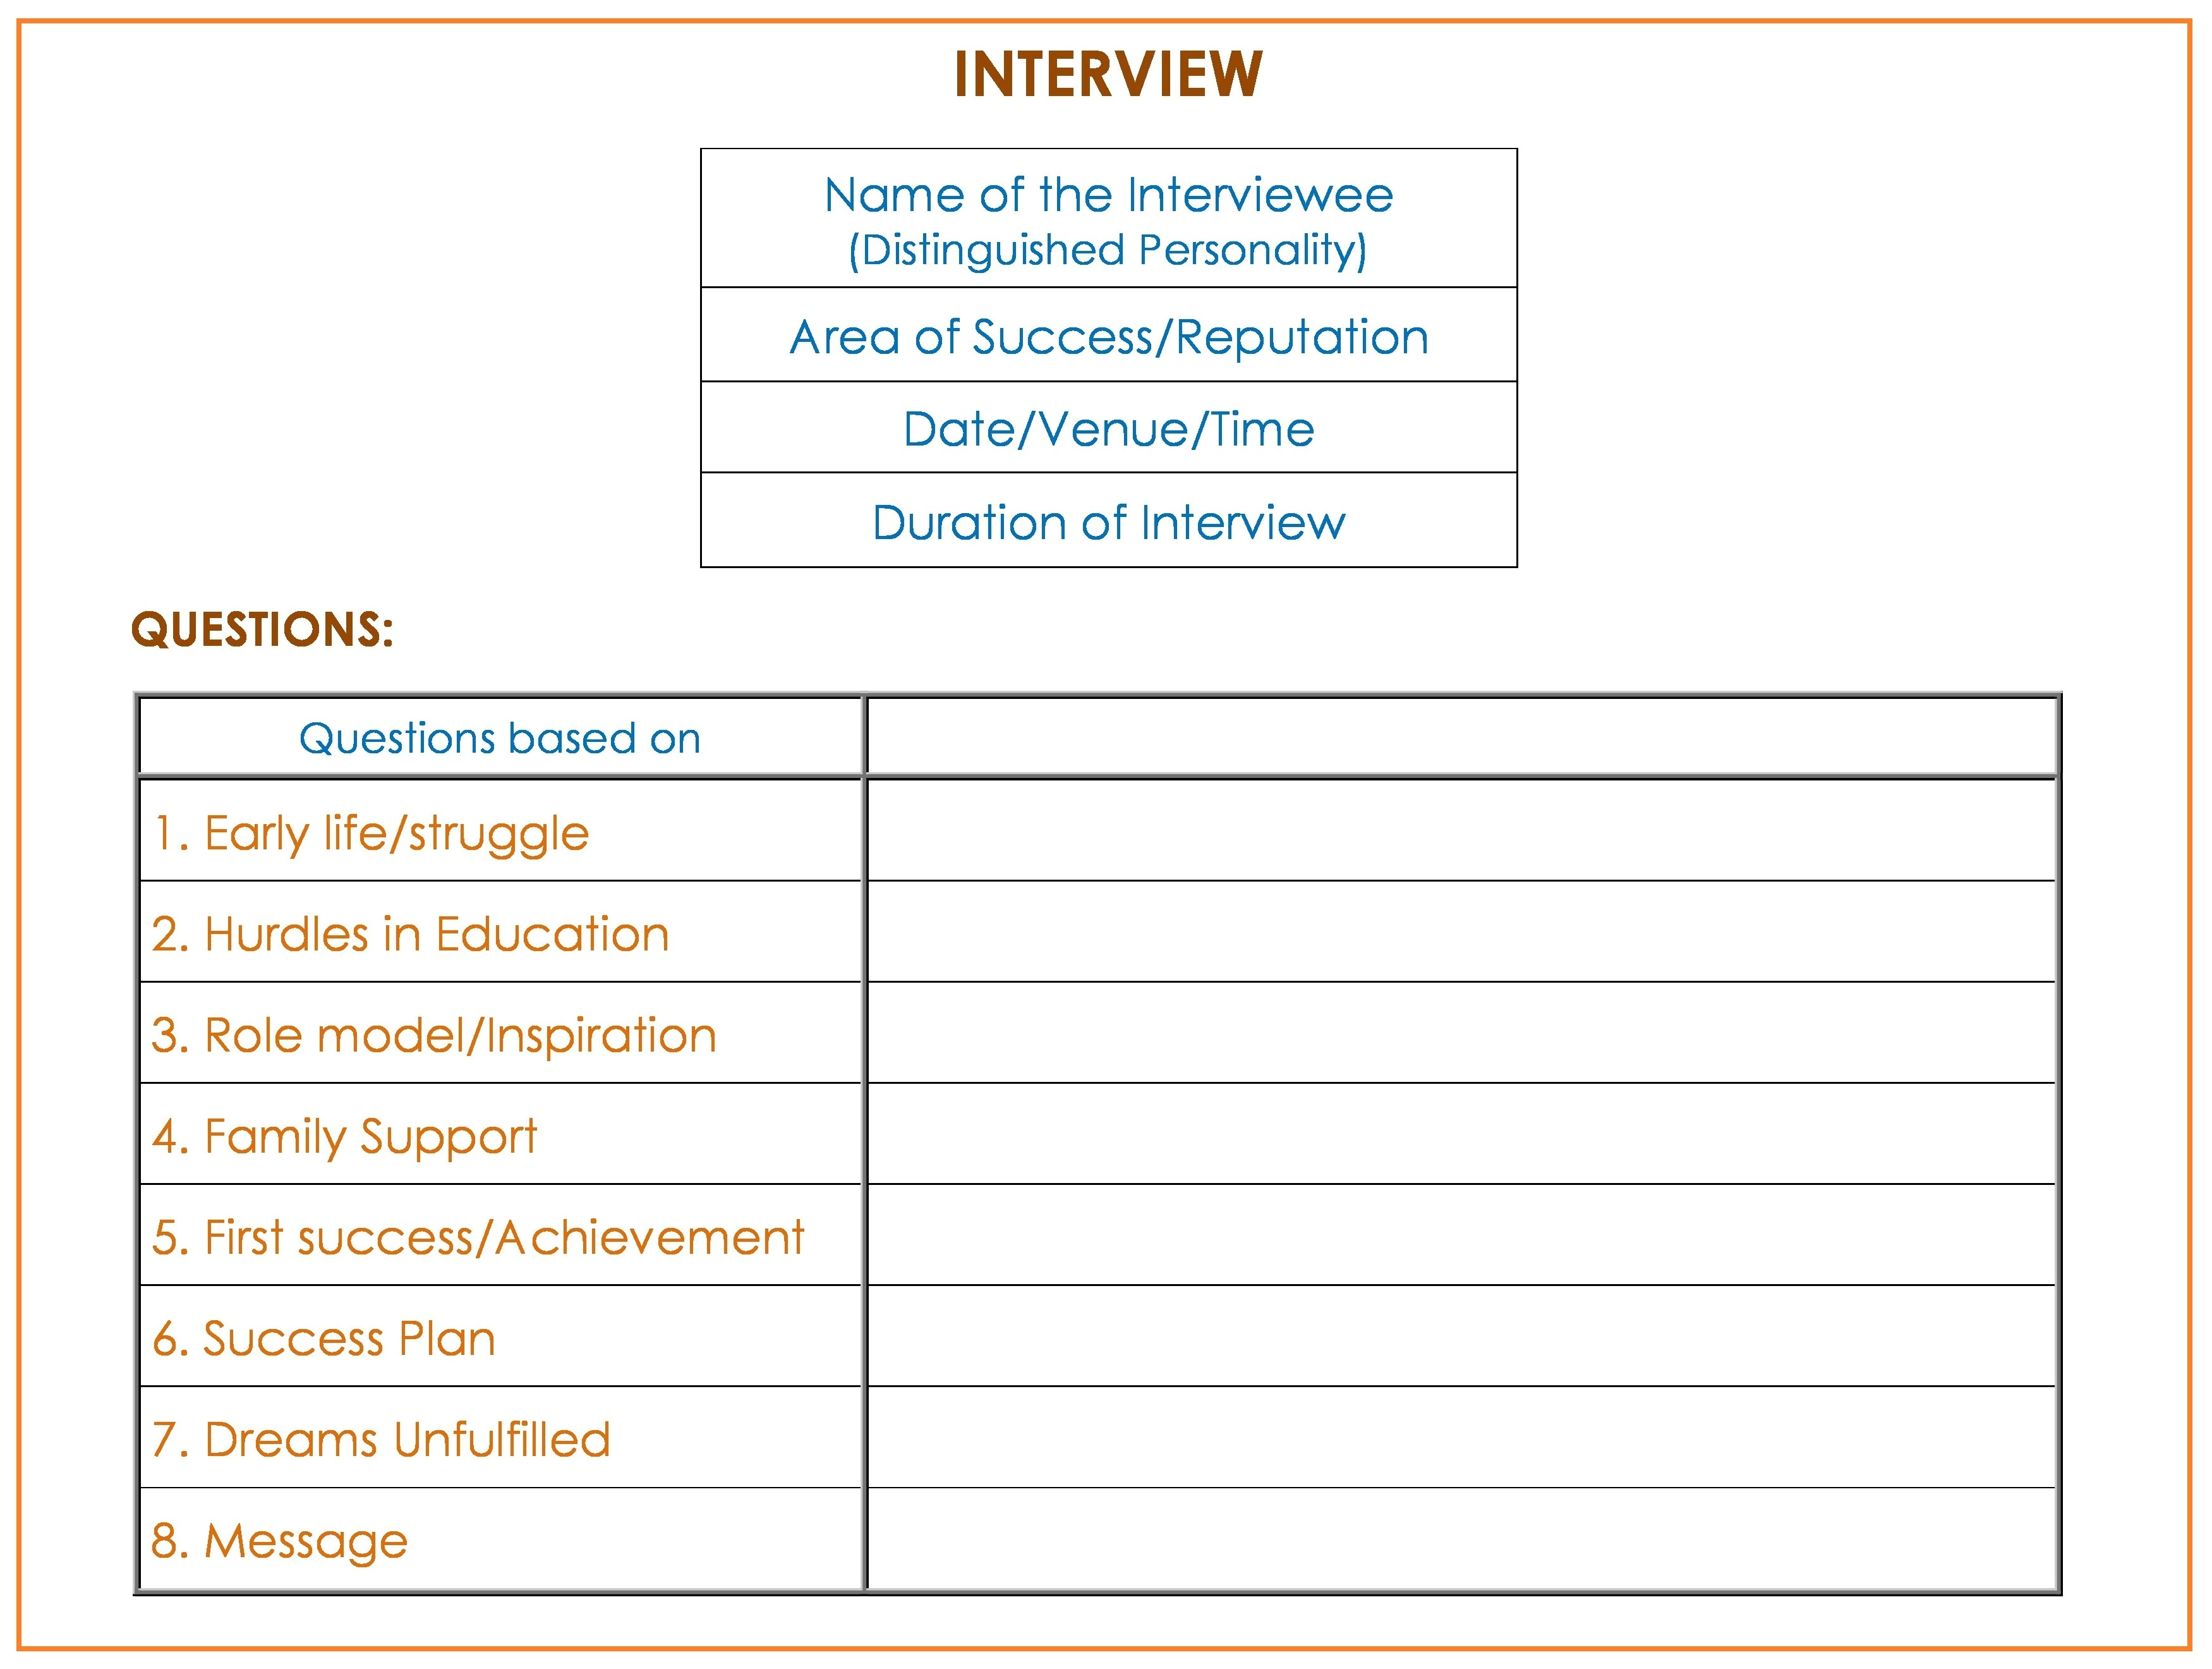 taking_interview_format